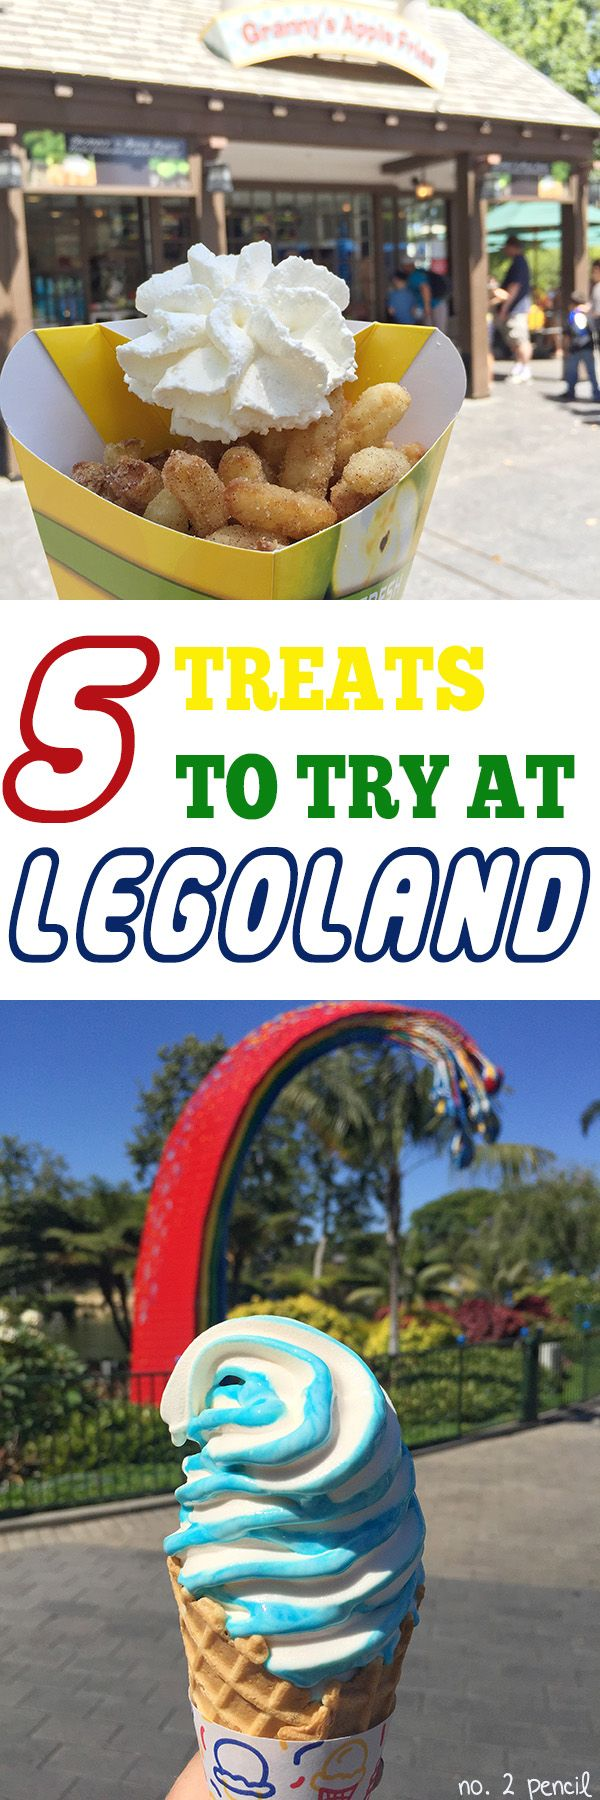 We found the best deal through Get Away Today, and I highly recommend booking your trip with them. Top 5 Treats to Eat at Legoland